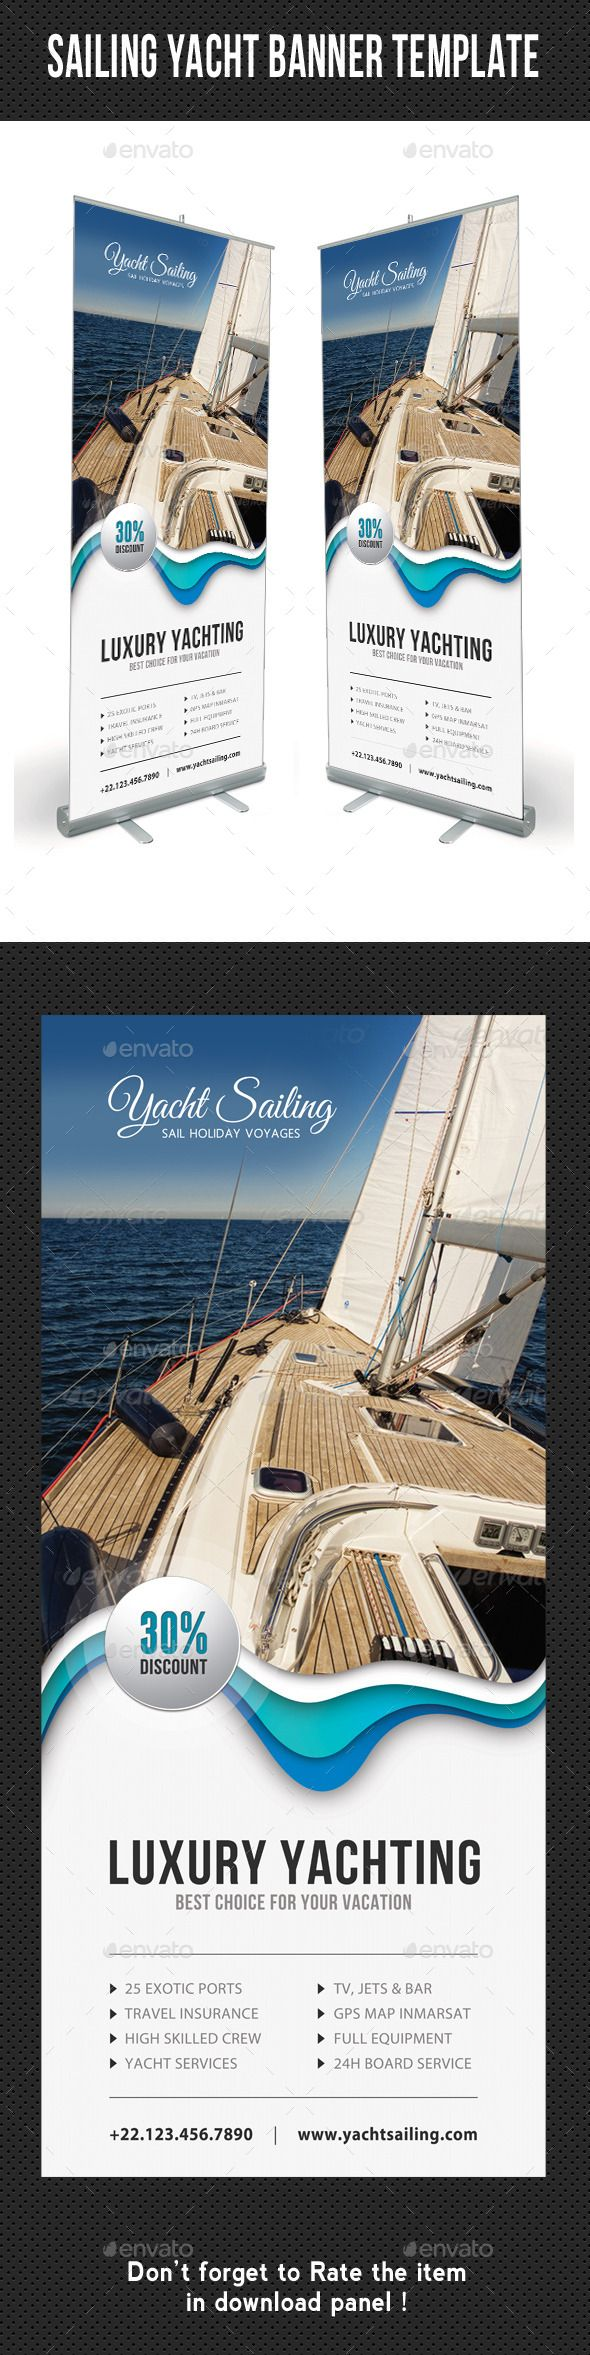 Sailing Yacht Banner Template 07 by rapidgraf High impact Roll-Up Banner Template, perfect for business advertisement or product promotion! Designed for any Boat and yacht sail